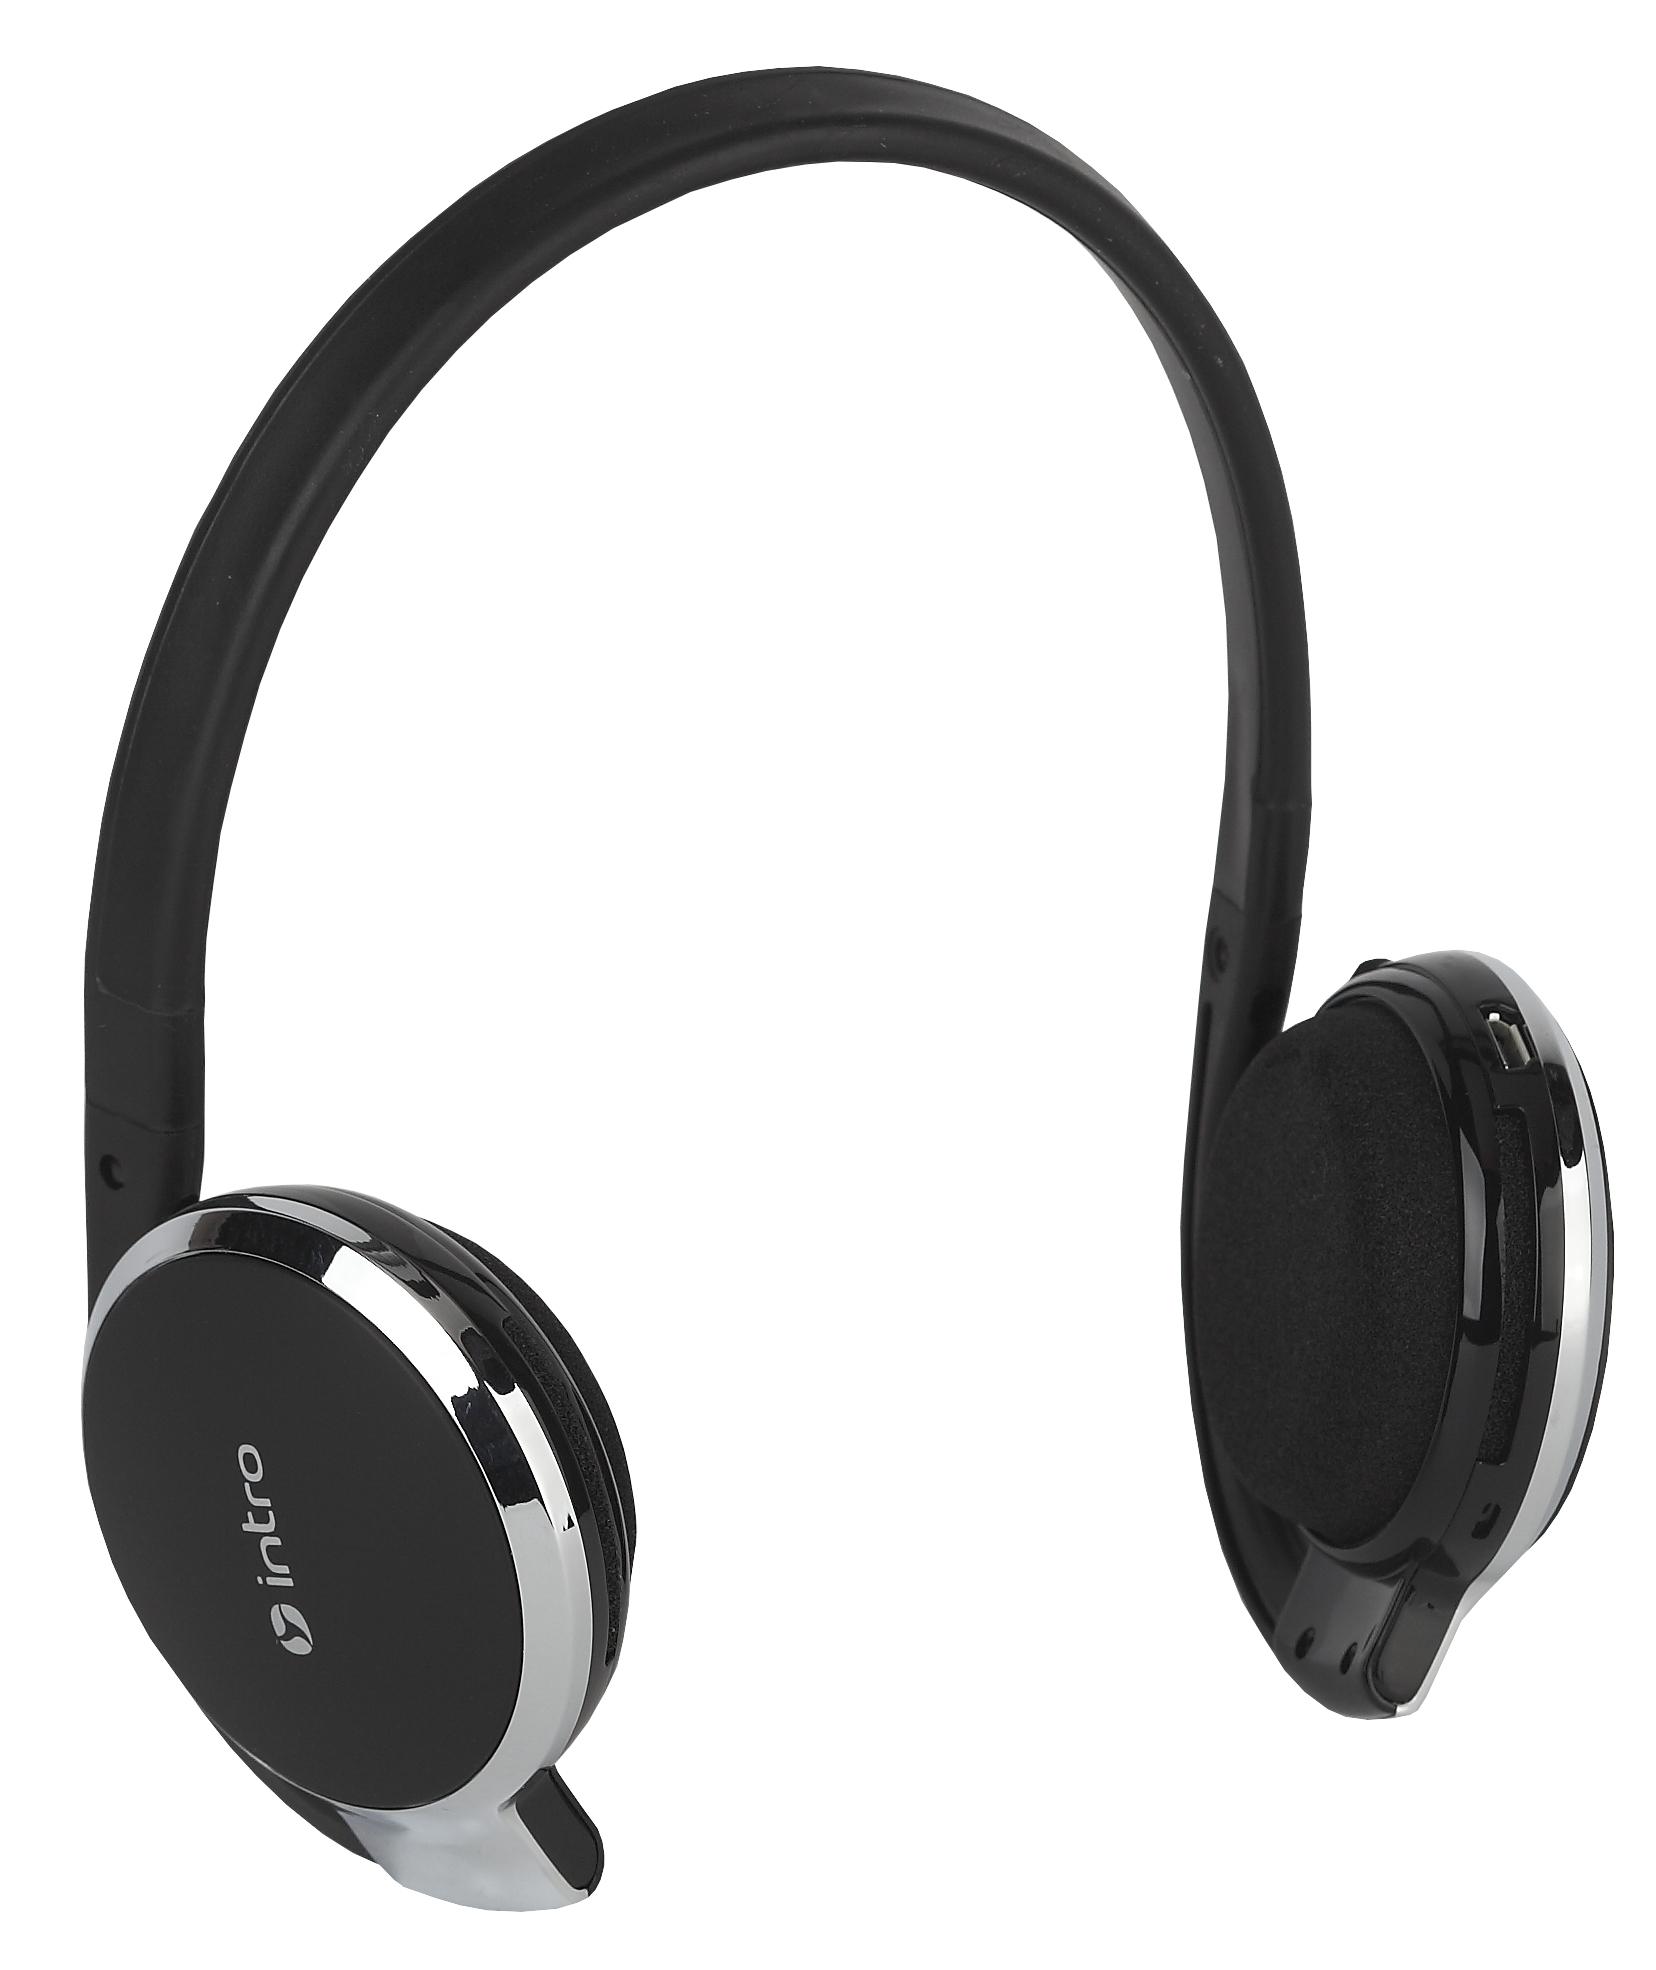 HSW510 Стереогарн_25 Intro WIRELESS Bluetooth (20/360)